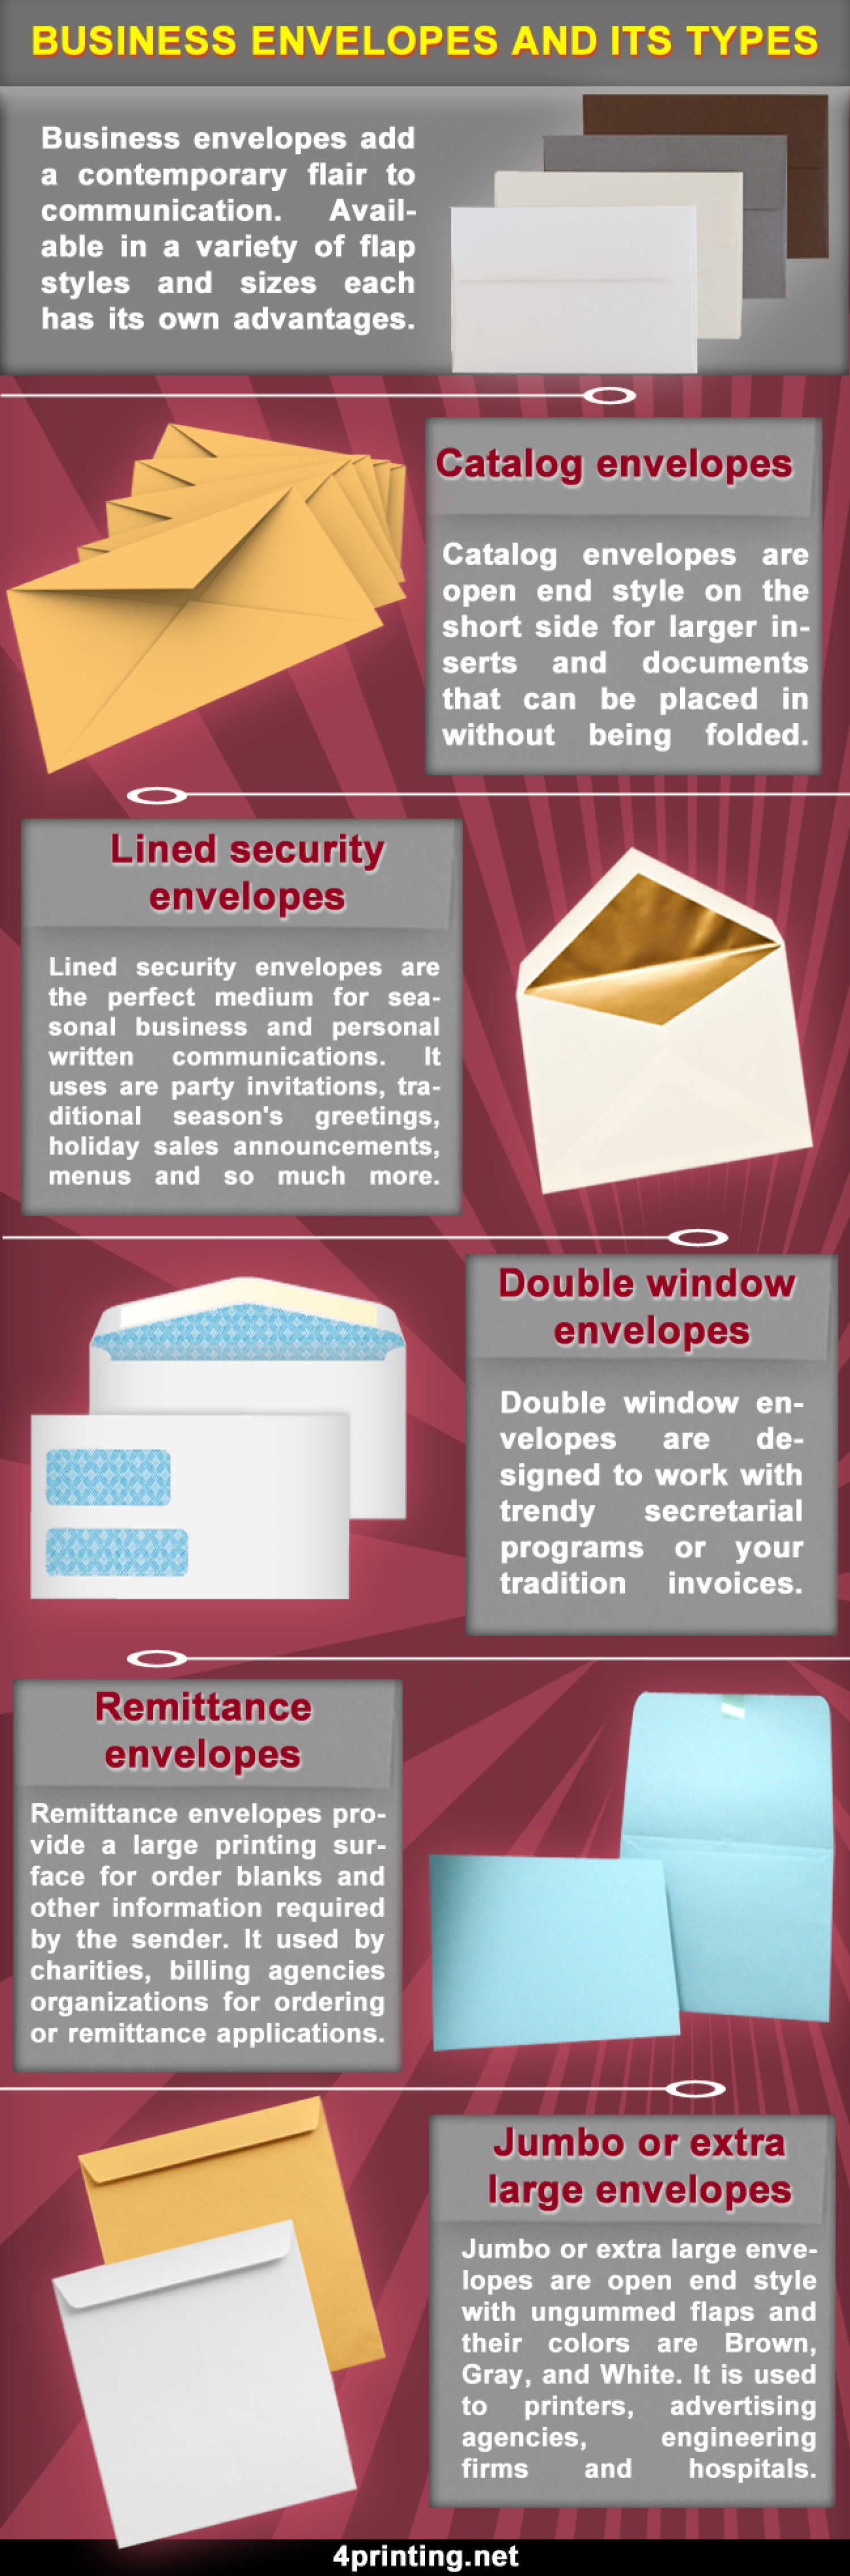 Business Envelopes and Its Types Infographic